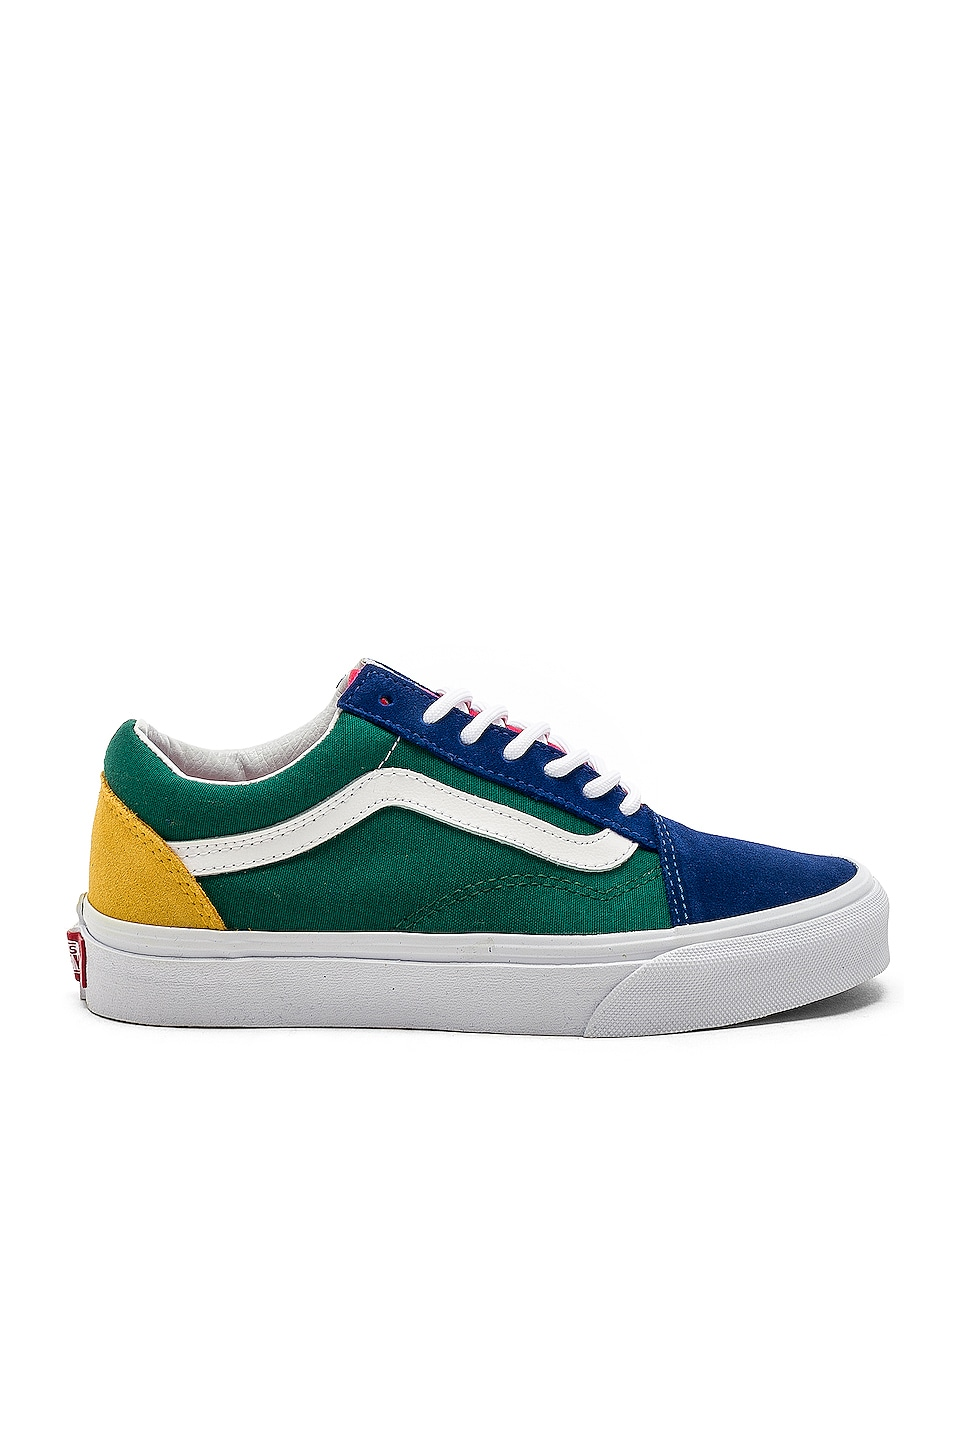 vans green blue yellow nz